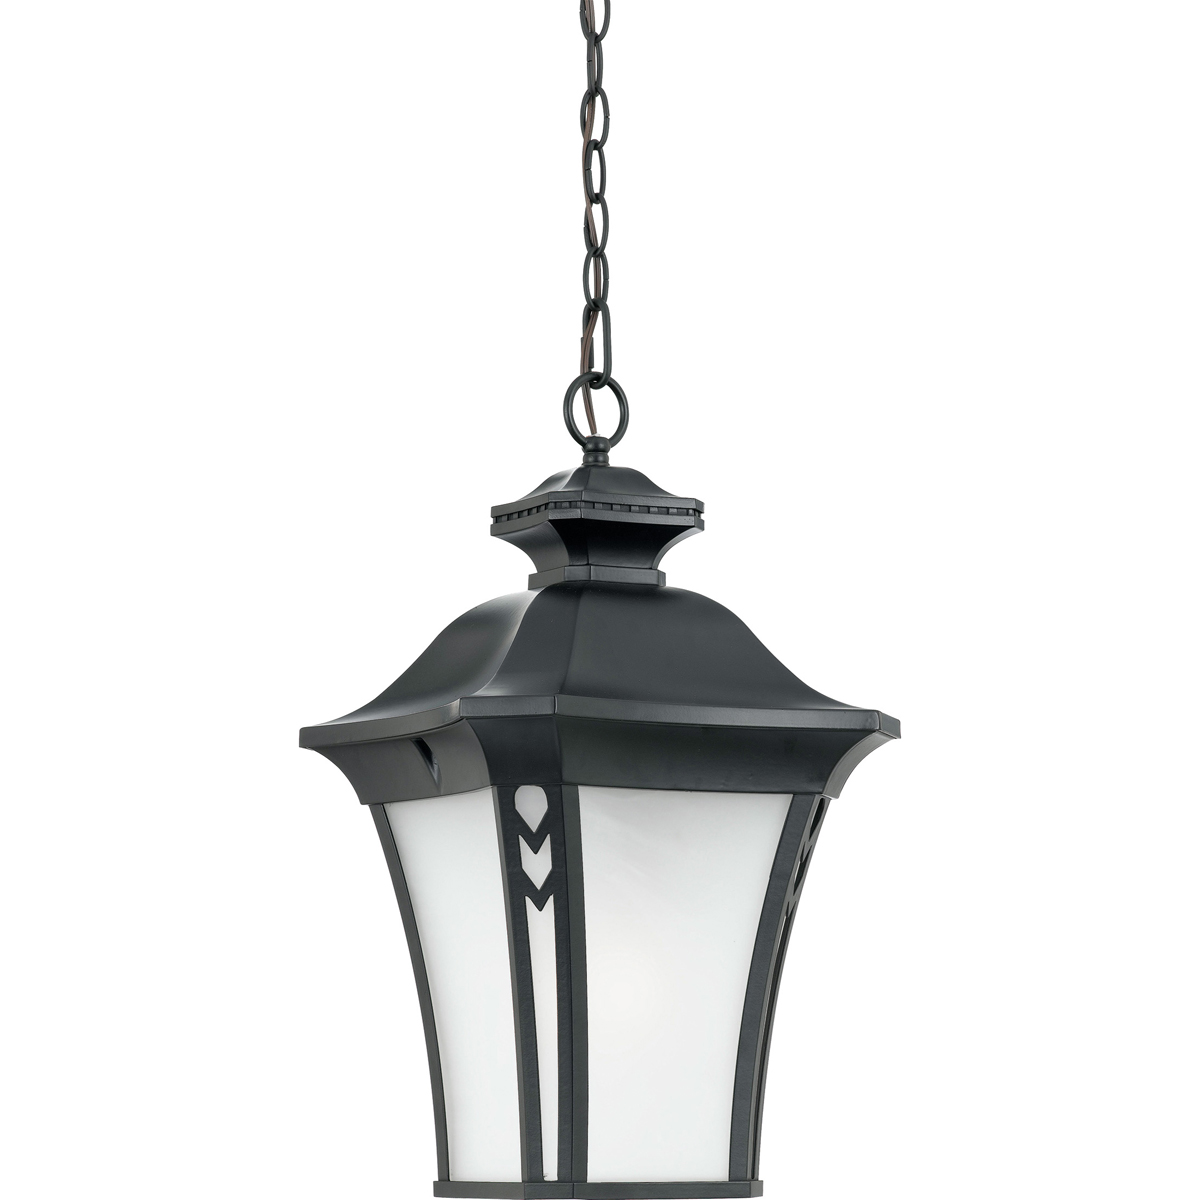 Quoizel Lighting (NF1912K) 1 Light Norfolk Outdoor Hanging Fixture in Mystic Black